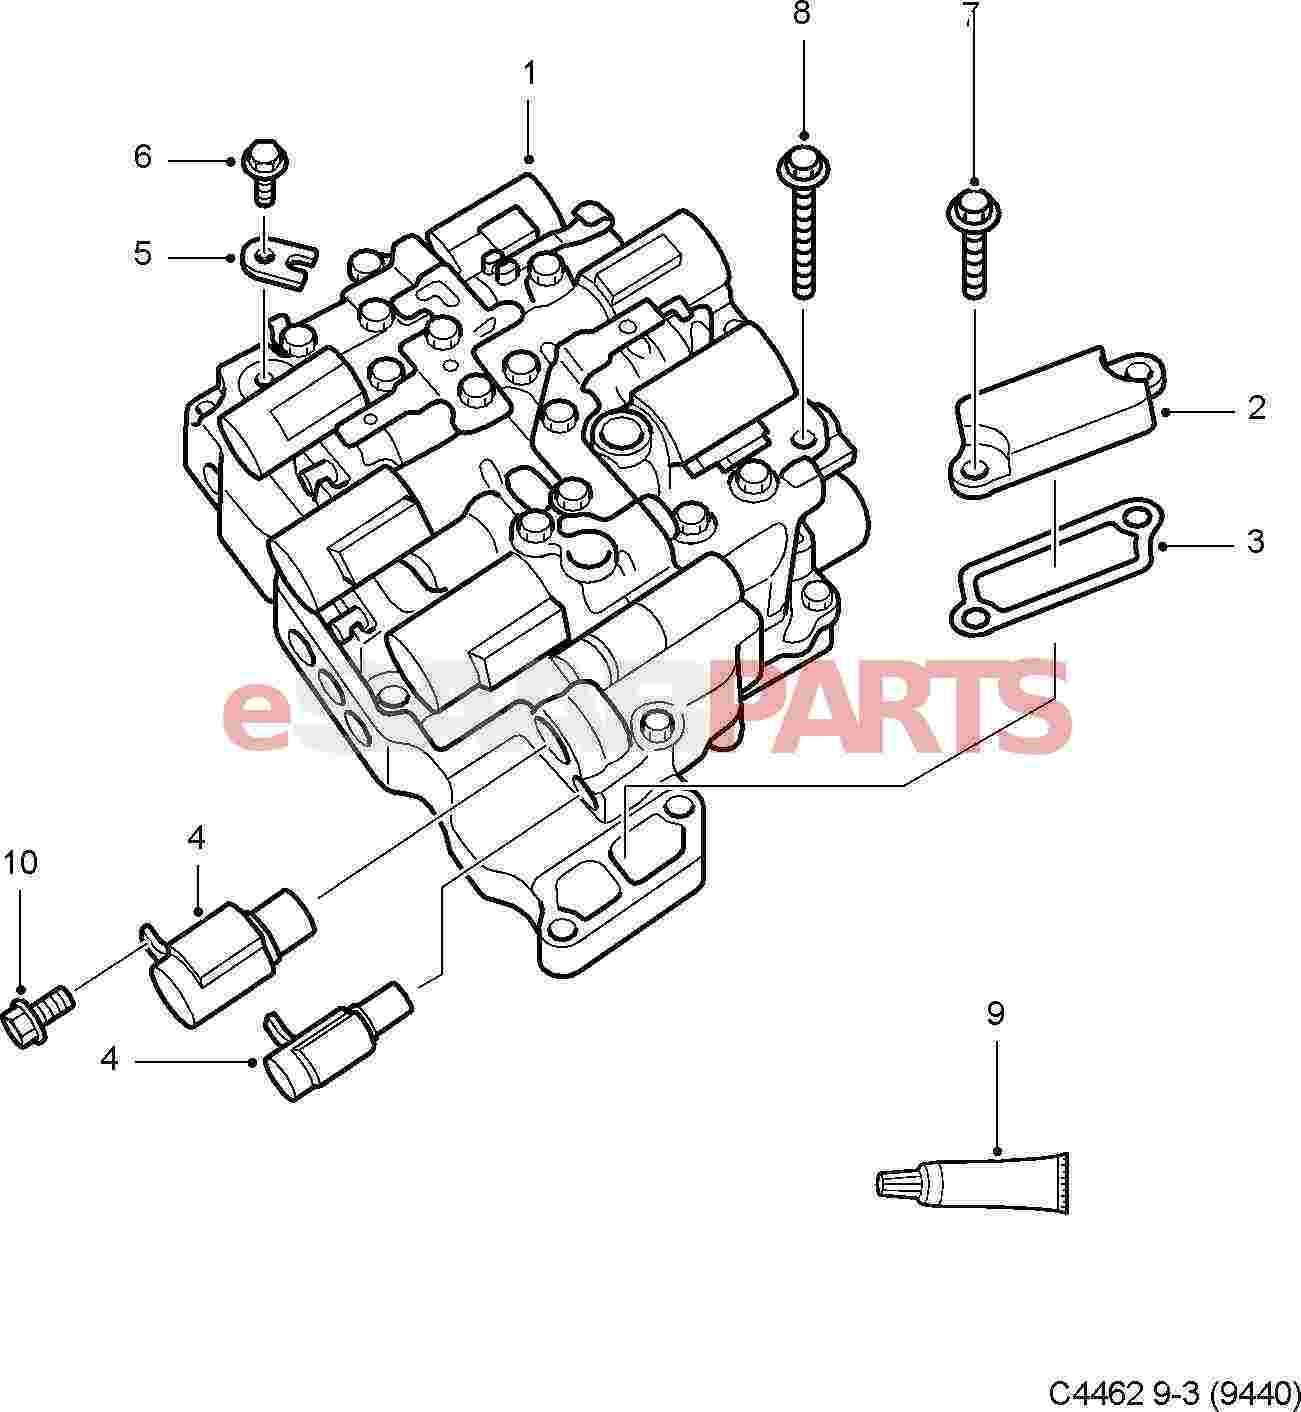 Engine Diagram 2001 Volvo S40 1 9 Turbo. Volvo. Auto